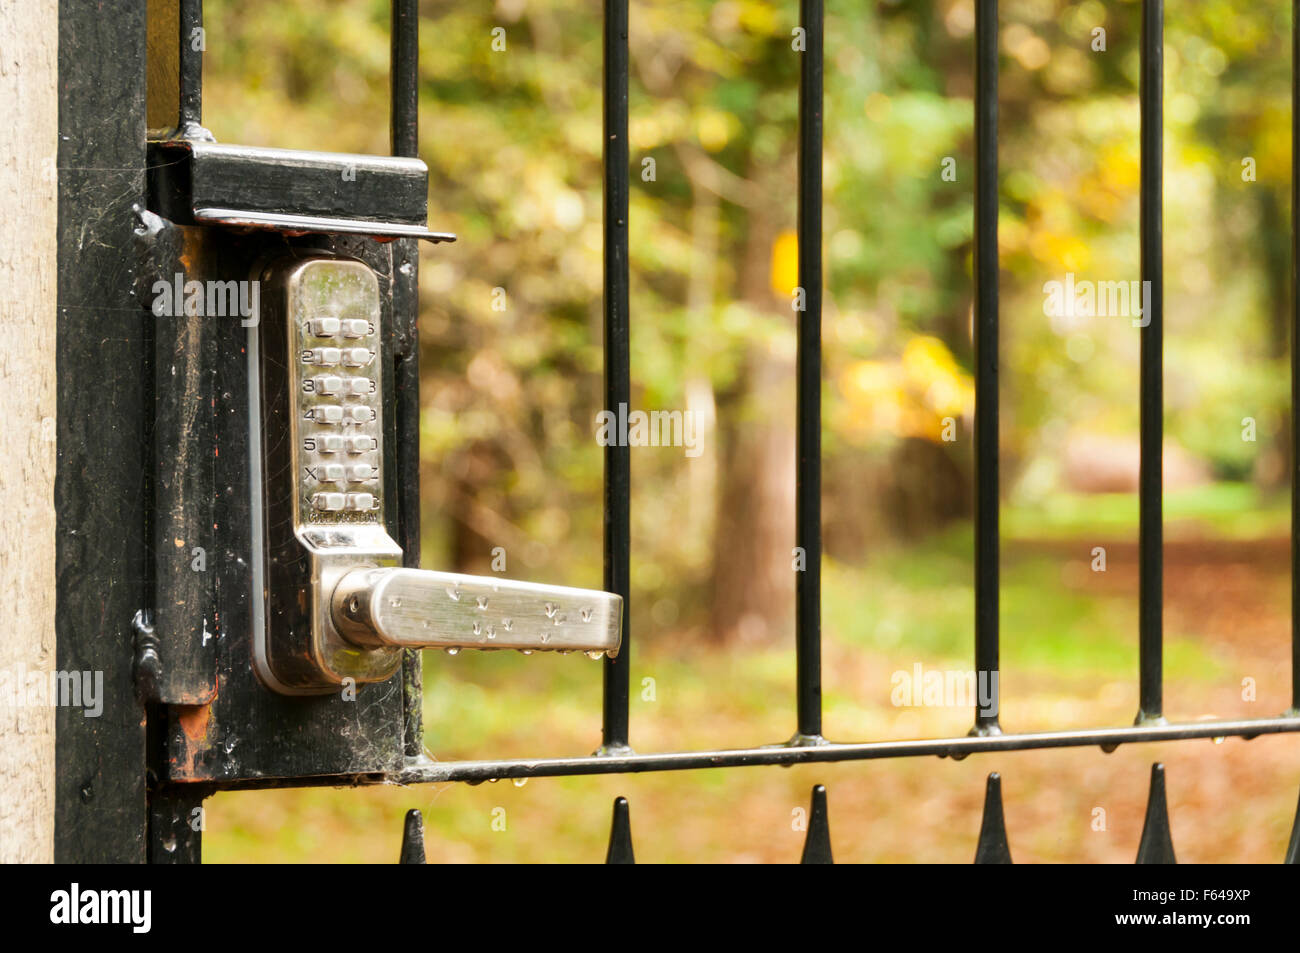 A Lock With A Keypad And Security Code On An Outside Gate